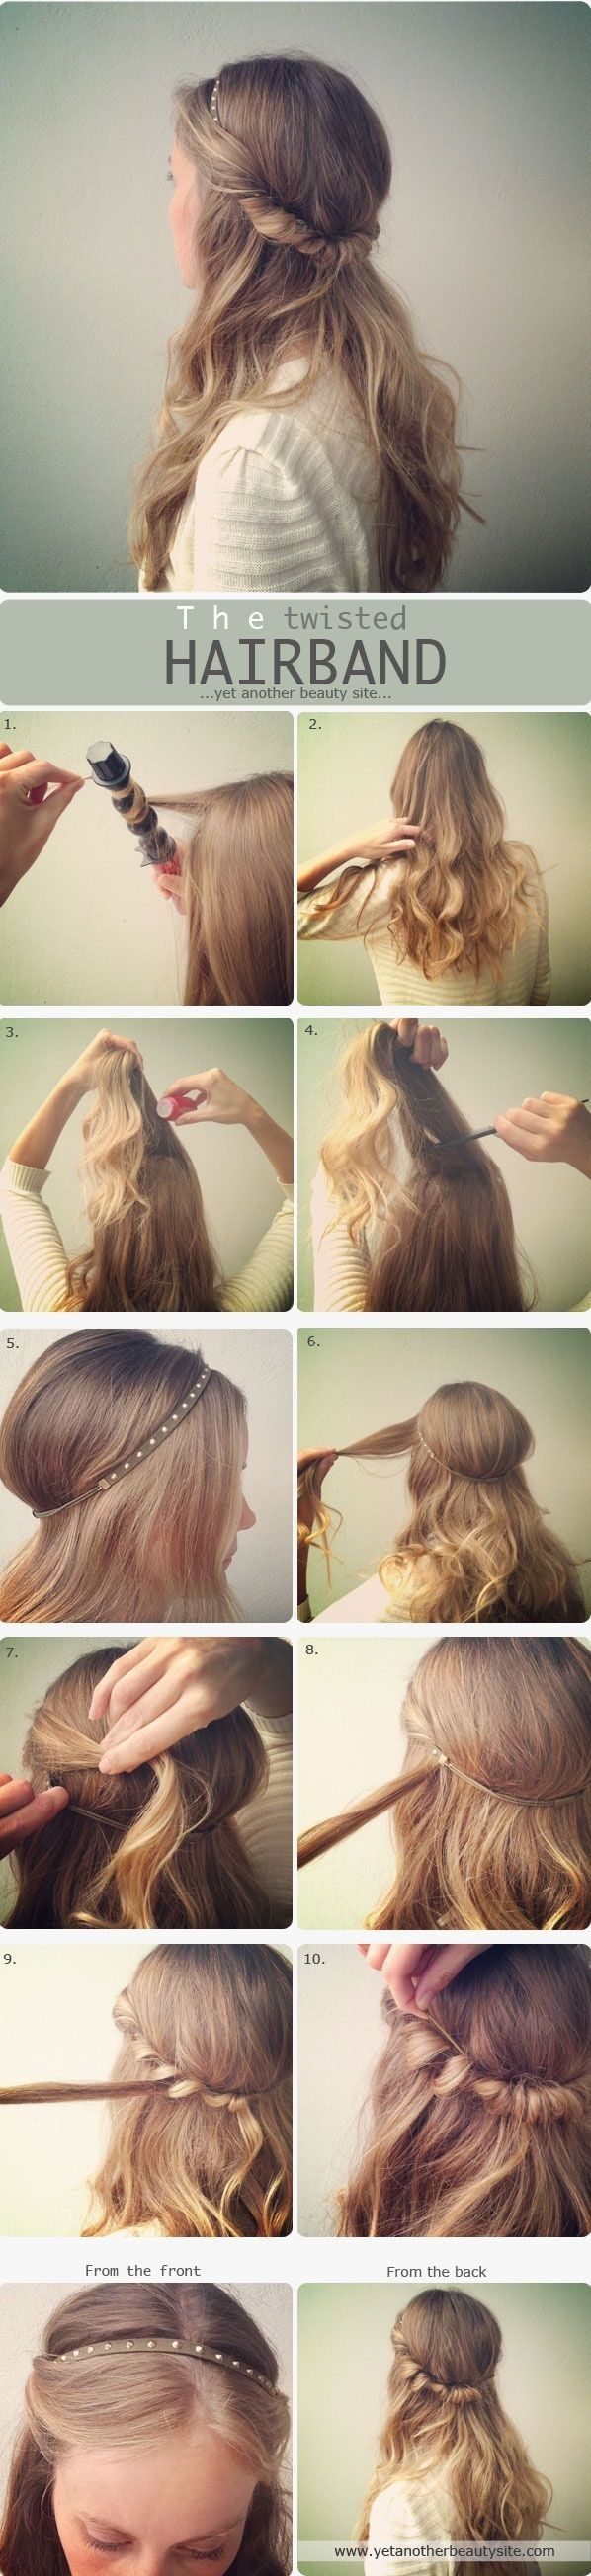 simple and easy hairstyles for your daily look pinterest hair